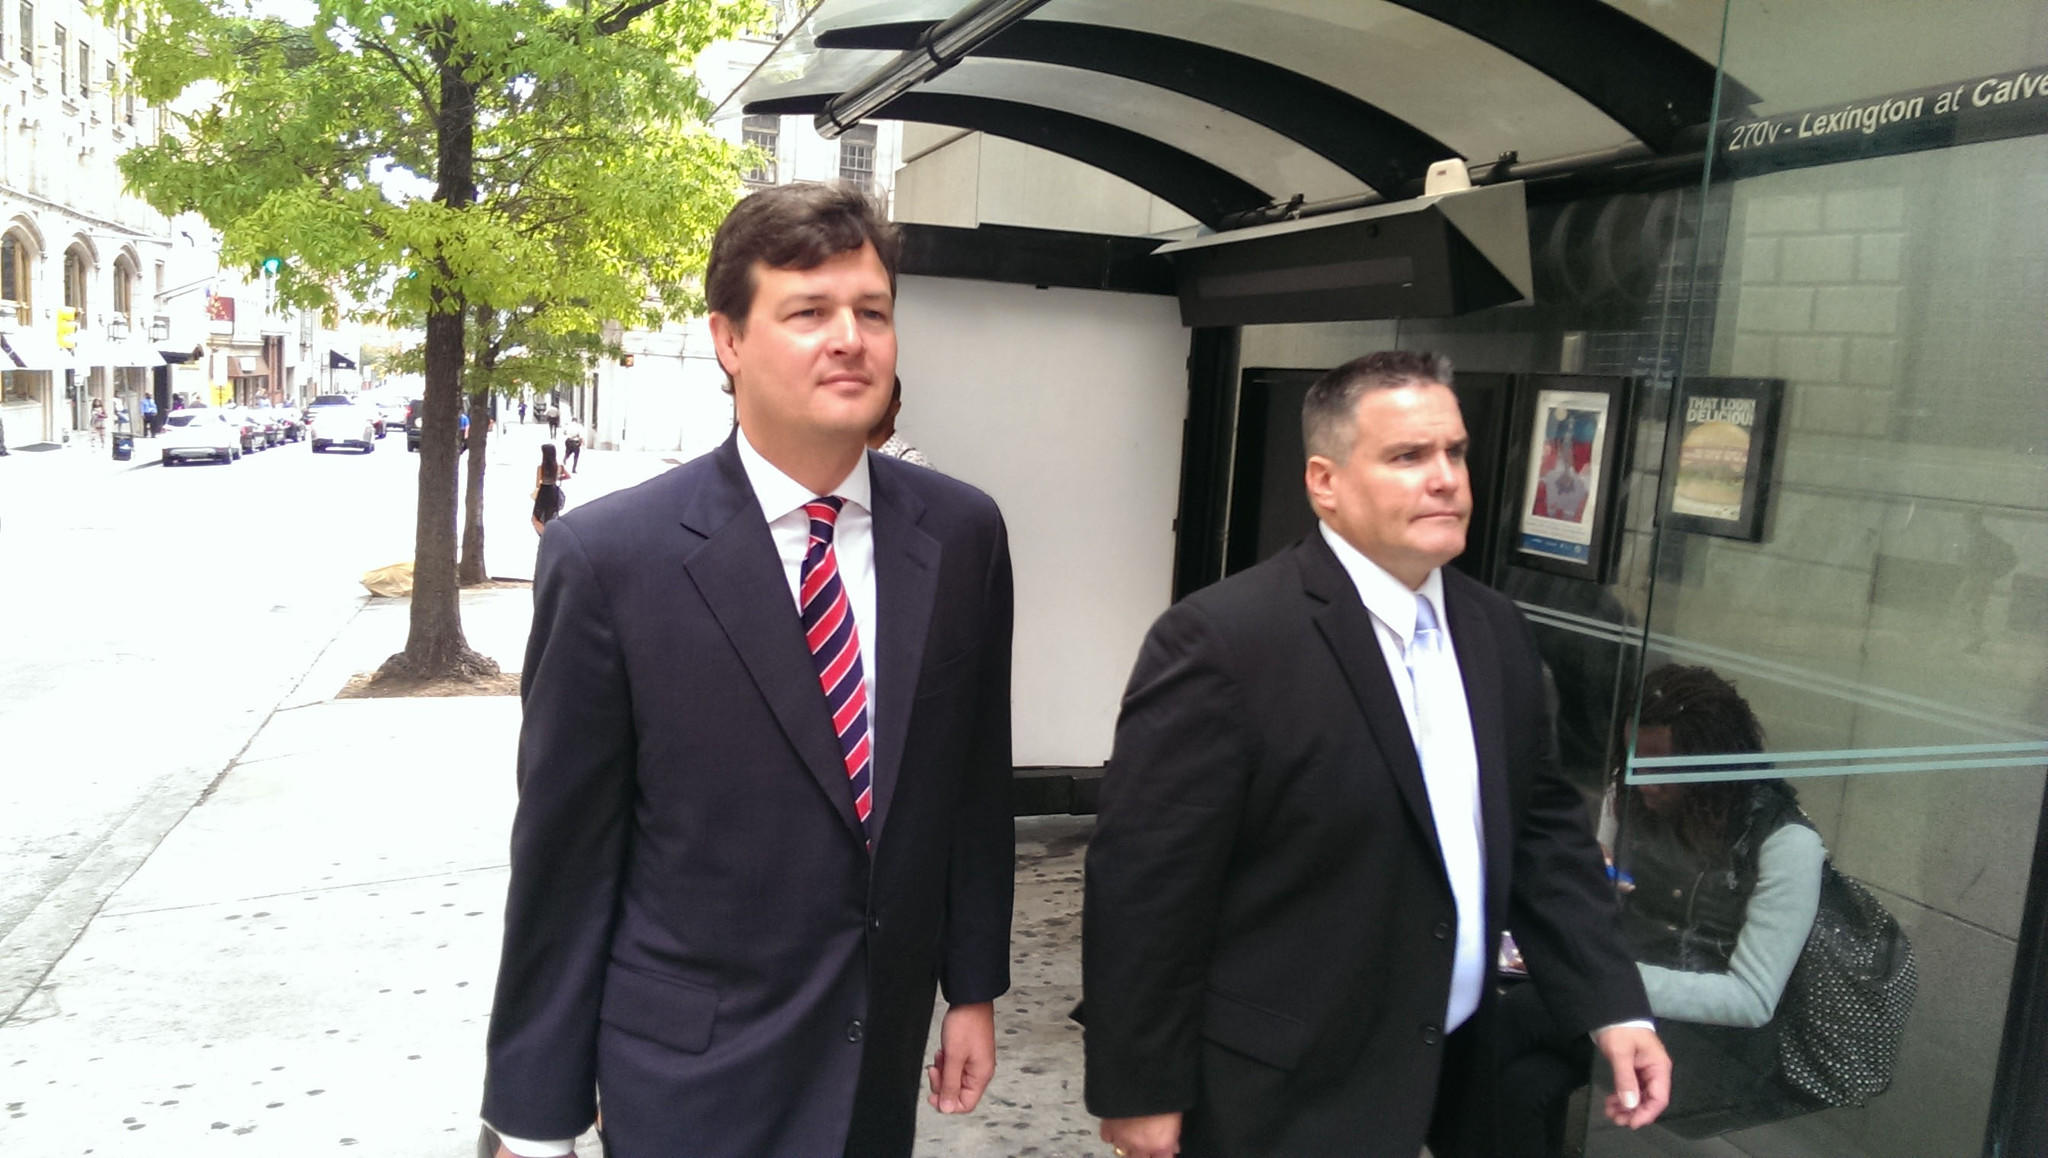 Baltimore Police Agt. Jeffrey Bolger (right) leaves court with one of his attorneys after pleading not guilty to animal mutilation and animal cruelty charges in the death of shar-pei Napa in June.